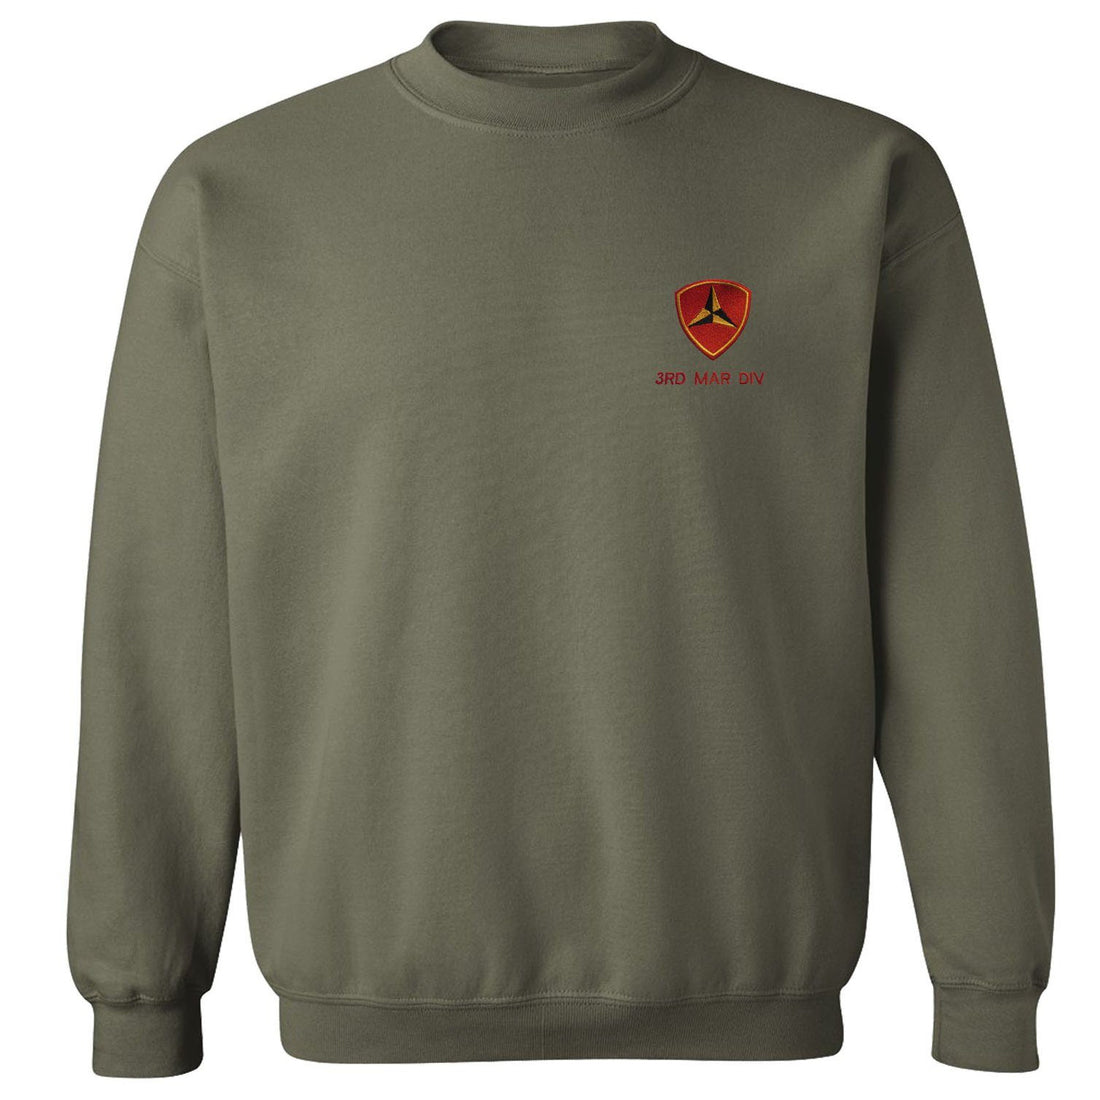 Embroidered 3rd Mar Div Sweatshirt (MULTIPLE COLORS)